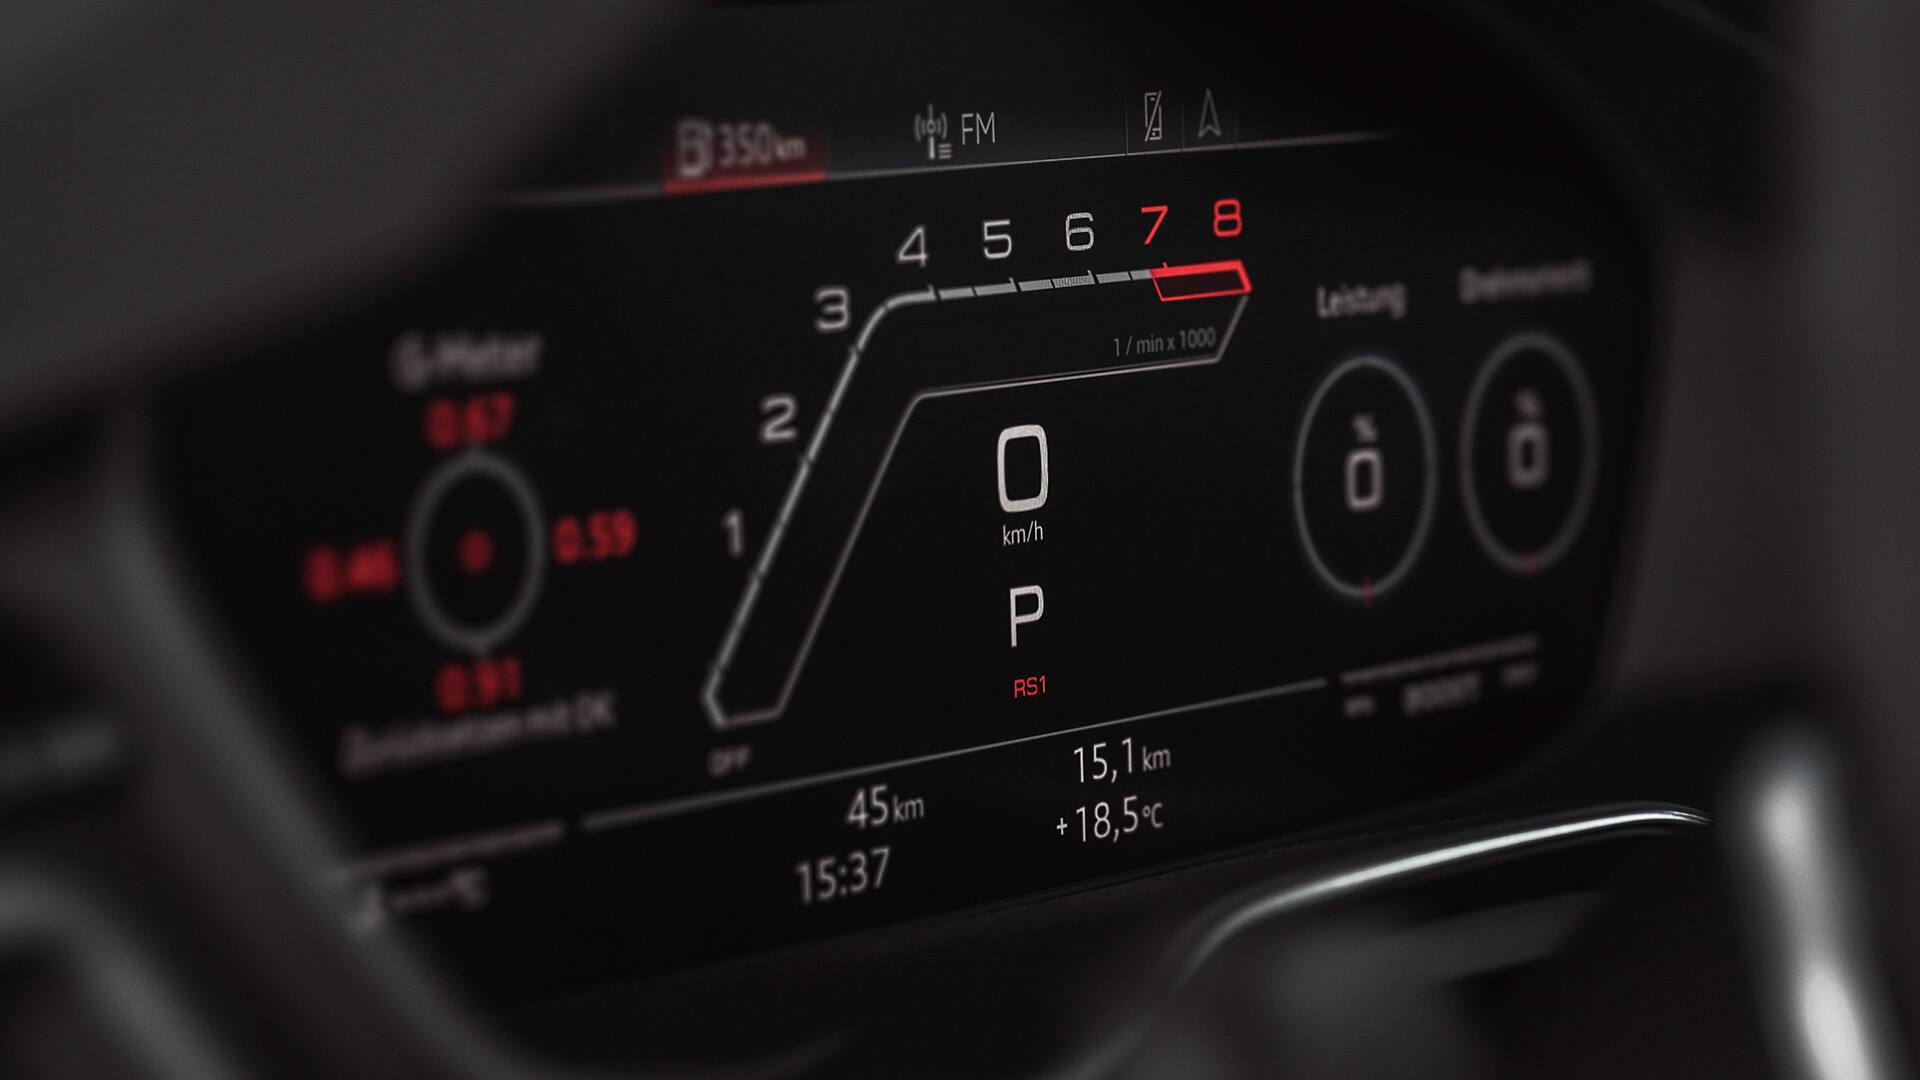 Audi virtual cockpit in the Audi RS 5 Coupé